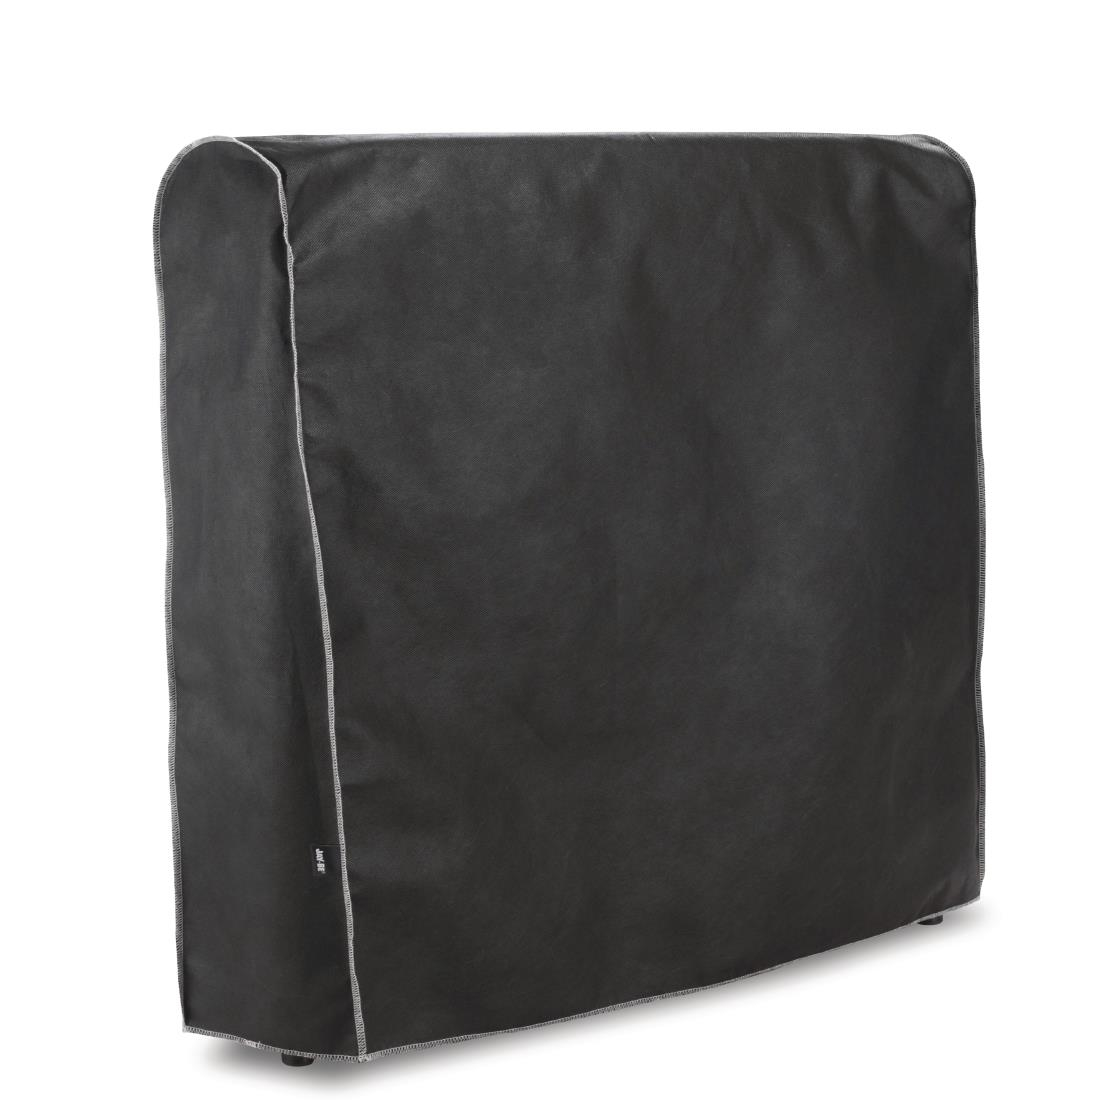 Image of Jay-Be Double Bed Storage Cover for GR374